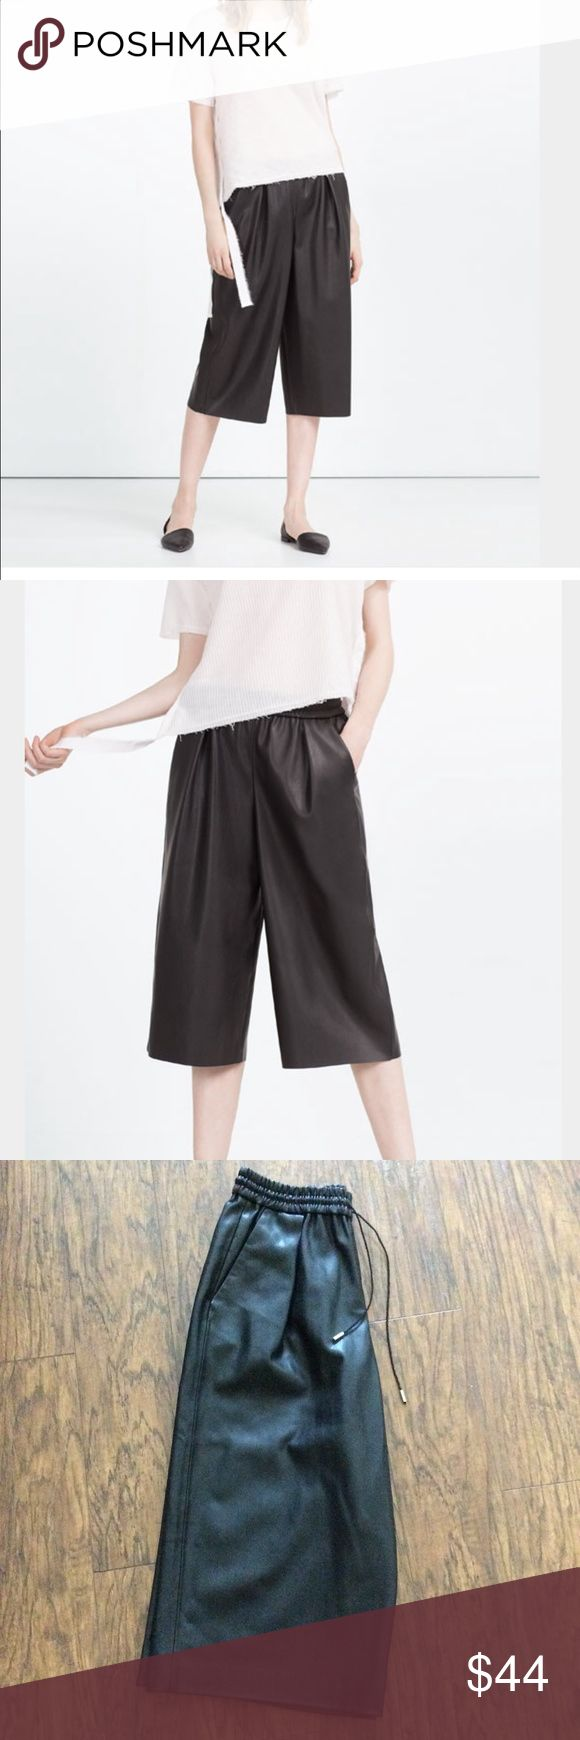 Faux leather culottes style Bermuda shorts New without tags. Features pickets, stretch waistband with waist tie. Zara Shorts Bermudas